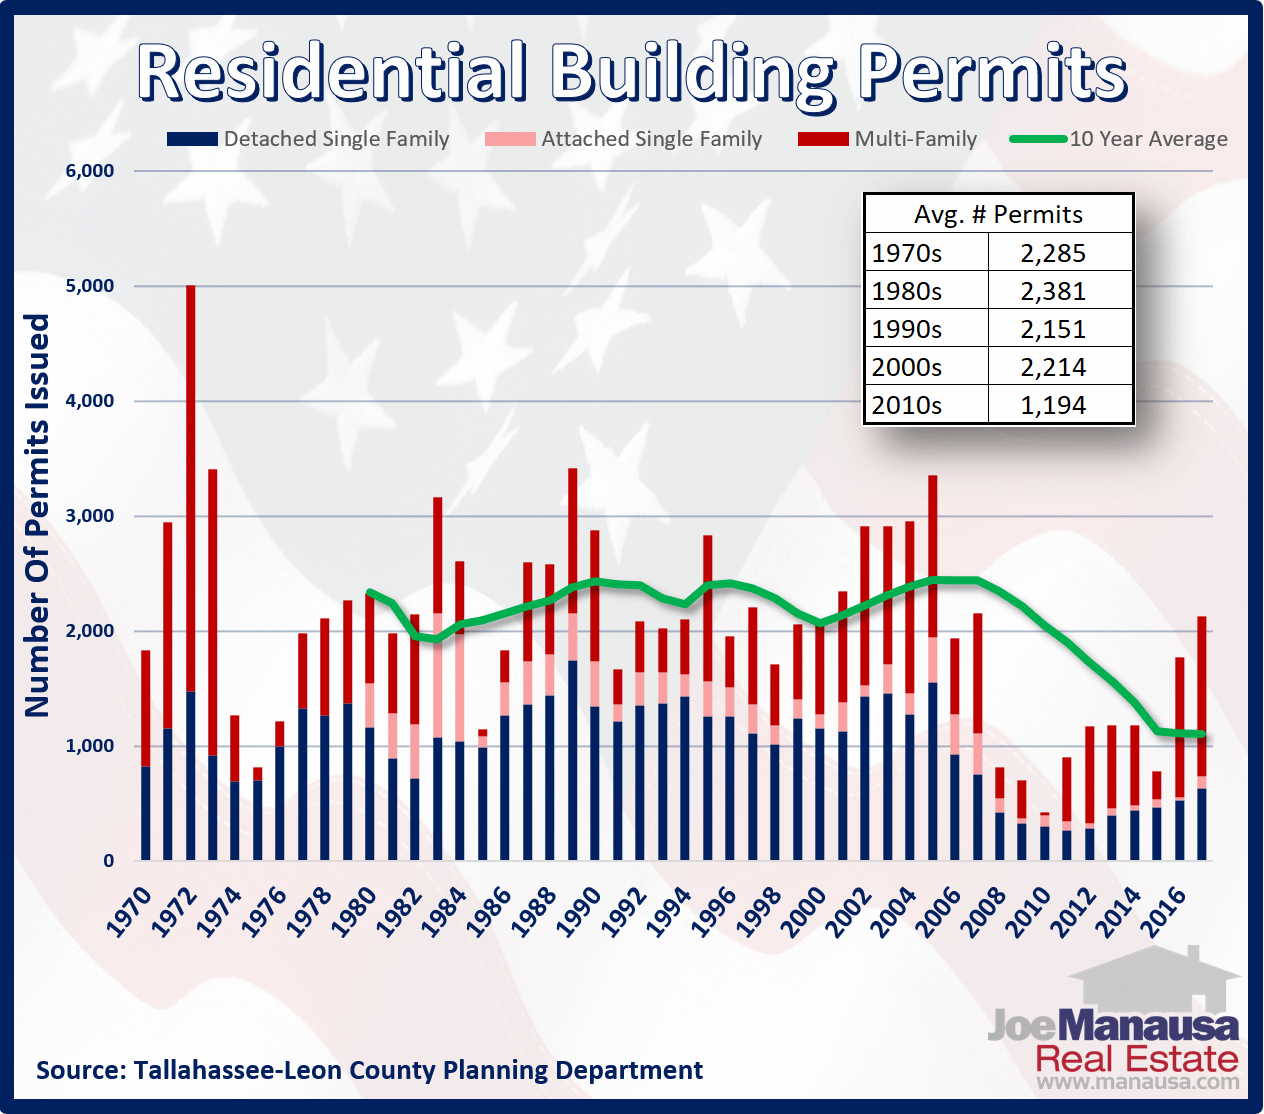 Tallahassee Residential Building Permits Since 1970